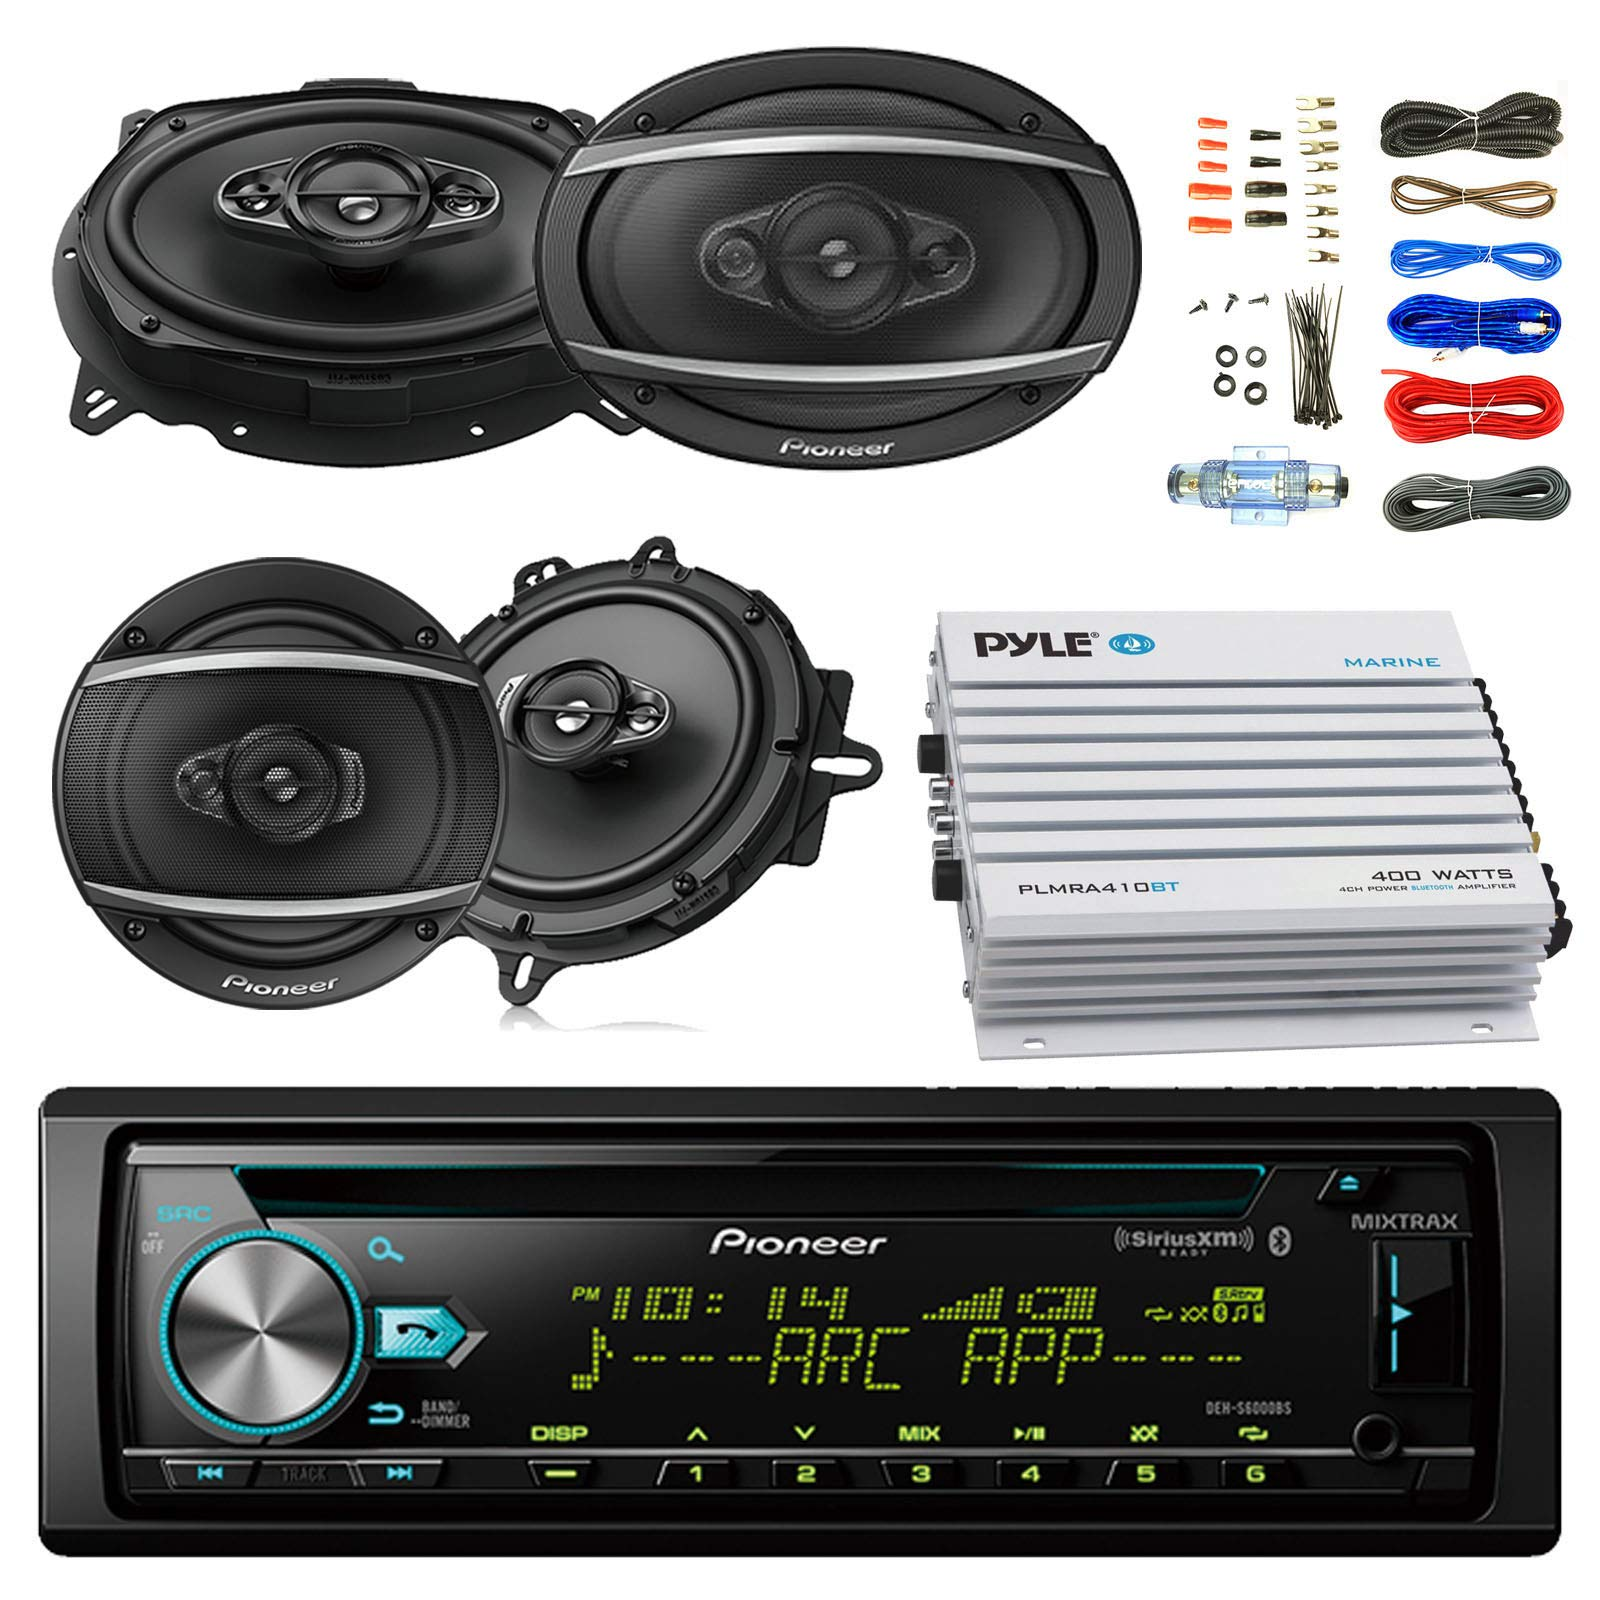 Pioneer DEH-S6000BS Car Bluetooth Radio USB AUX CD Player Receiver - Bundle with 2X TSA1670F 6.5'' 3-Way Car Audio Speakers - 2X 6.5-6.75'' 4-Way Stereo Speaker + 4-Channel Amplifier + Amp Kit